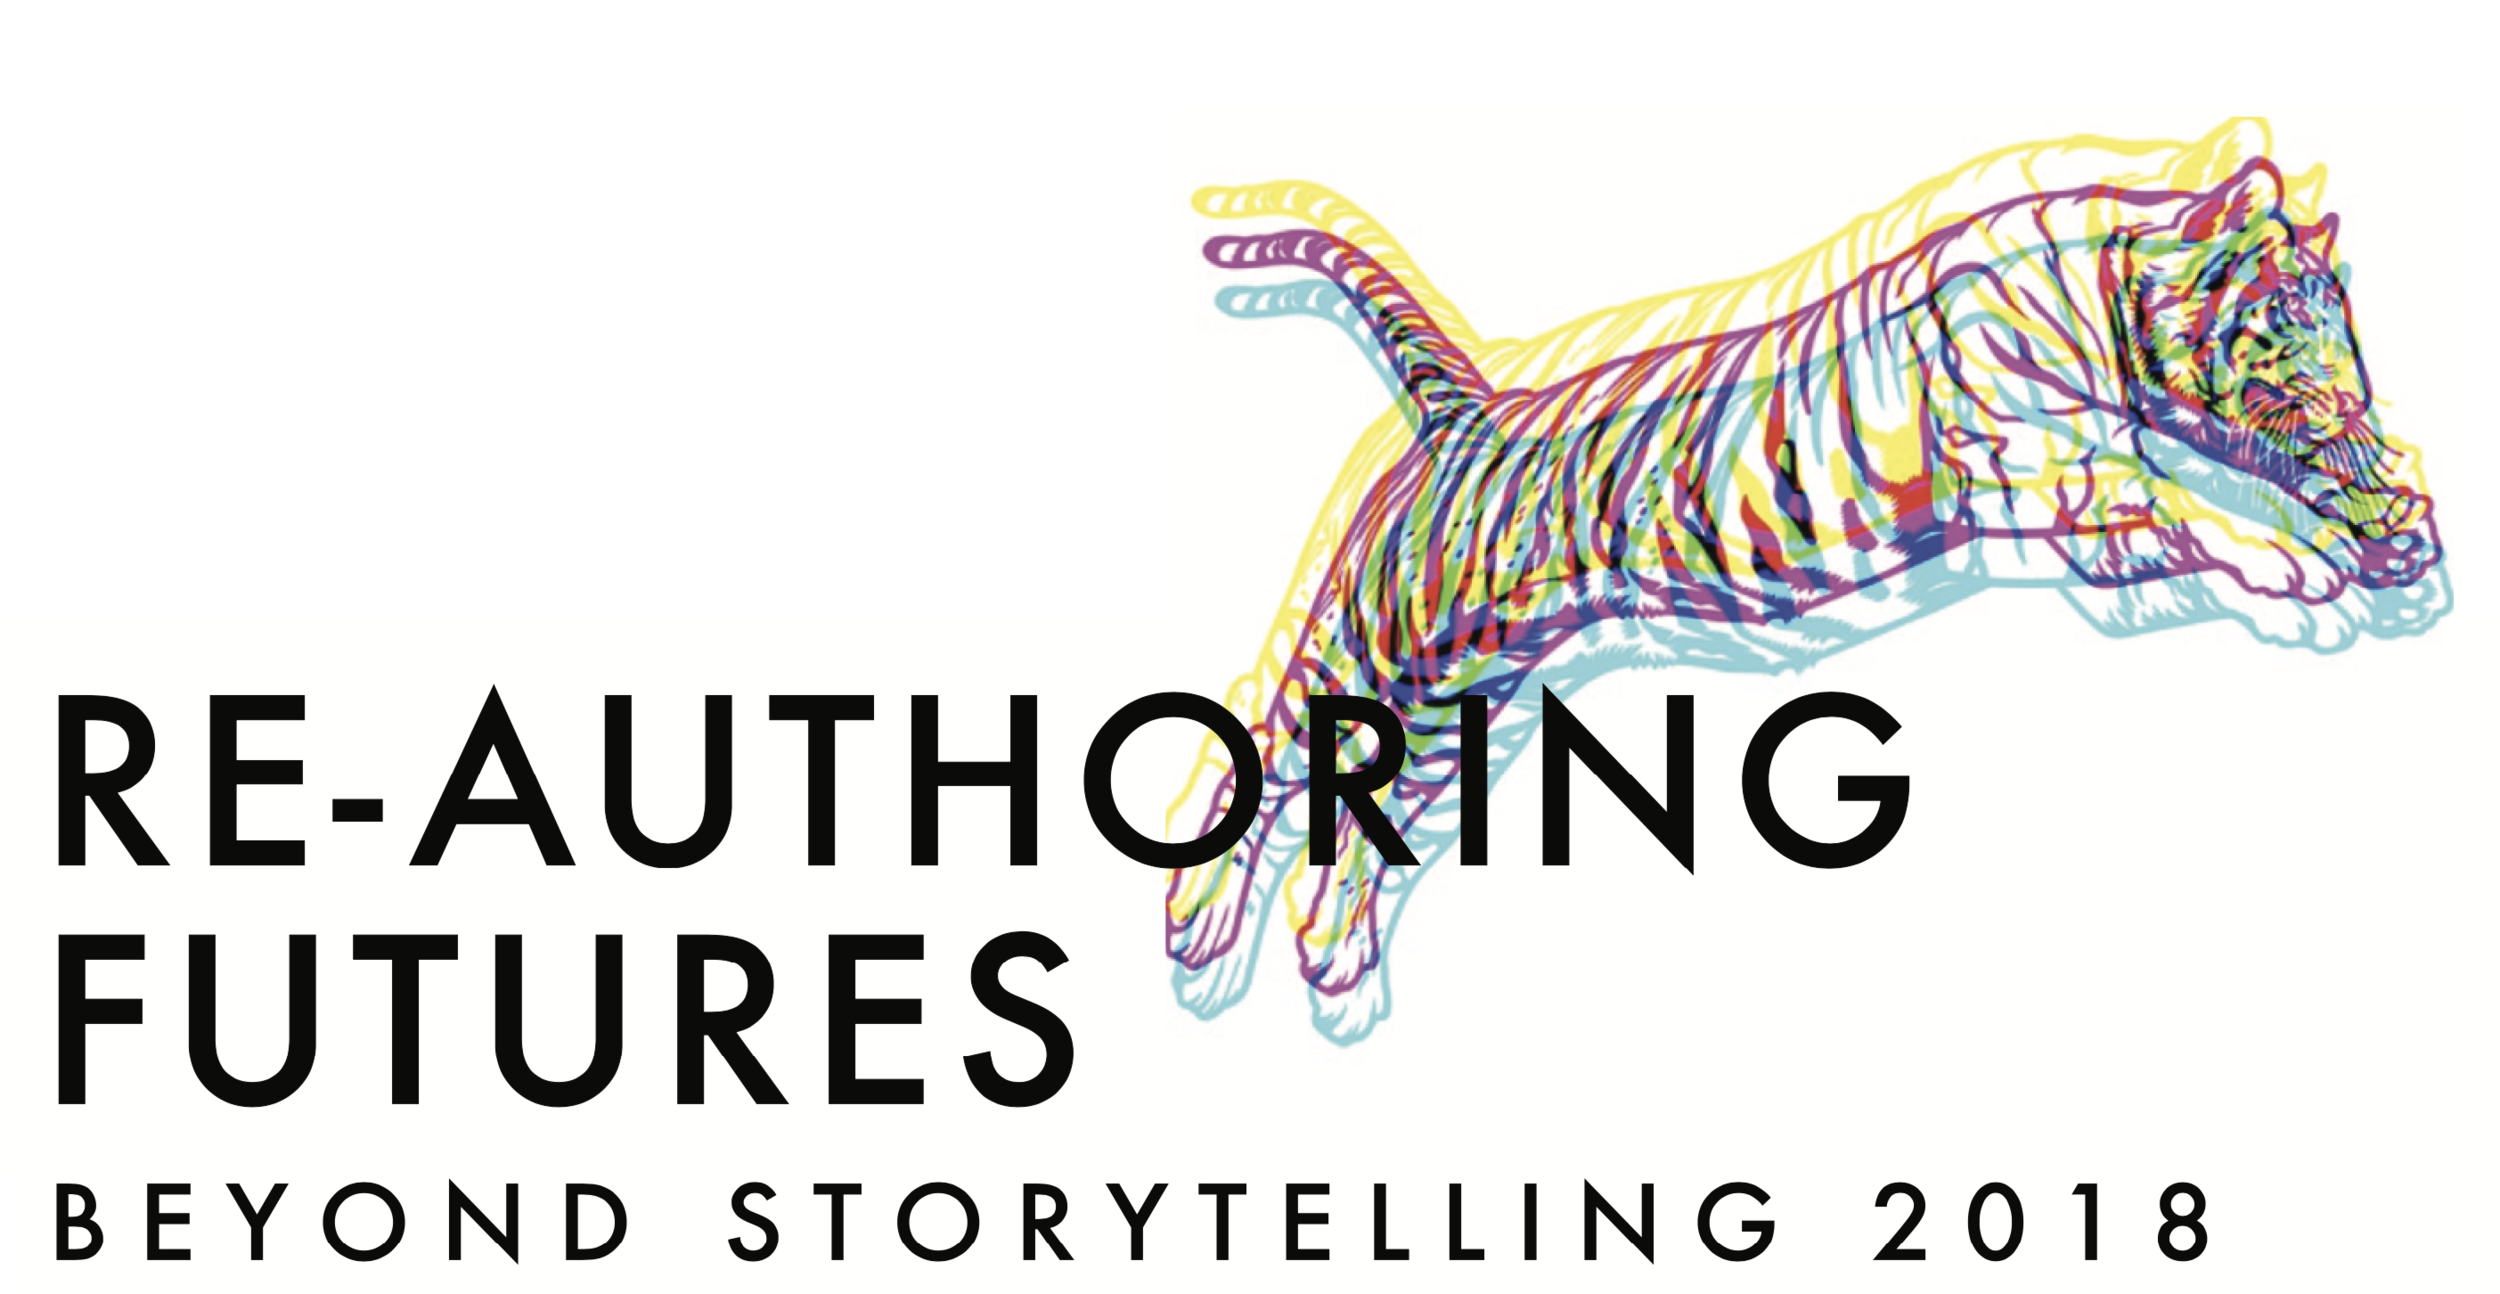 The BEYOND STORYTELLING 2018 Logo